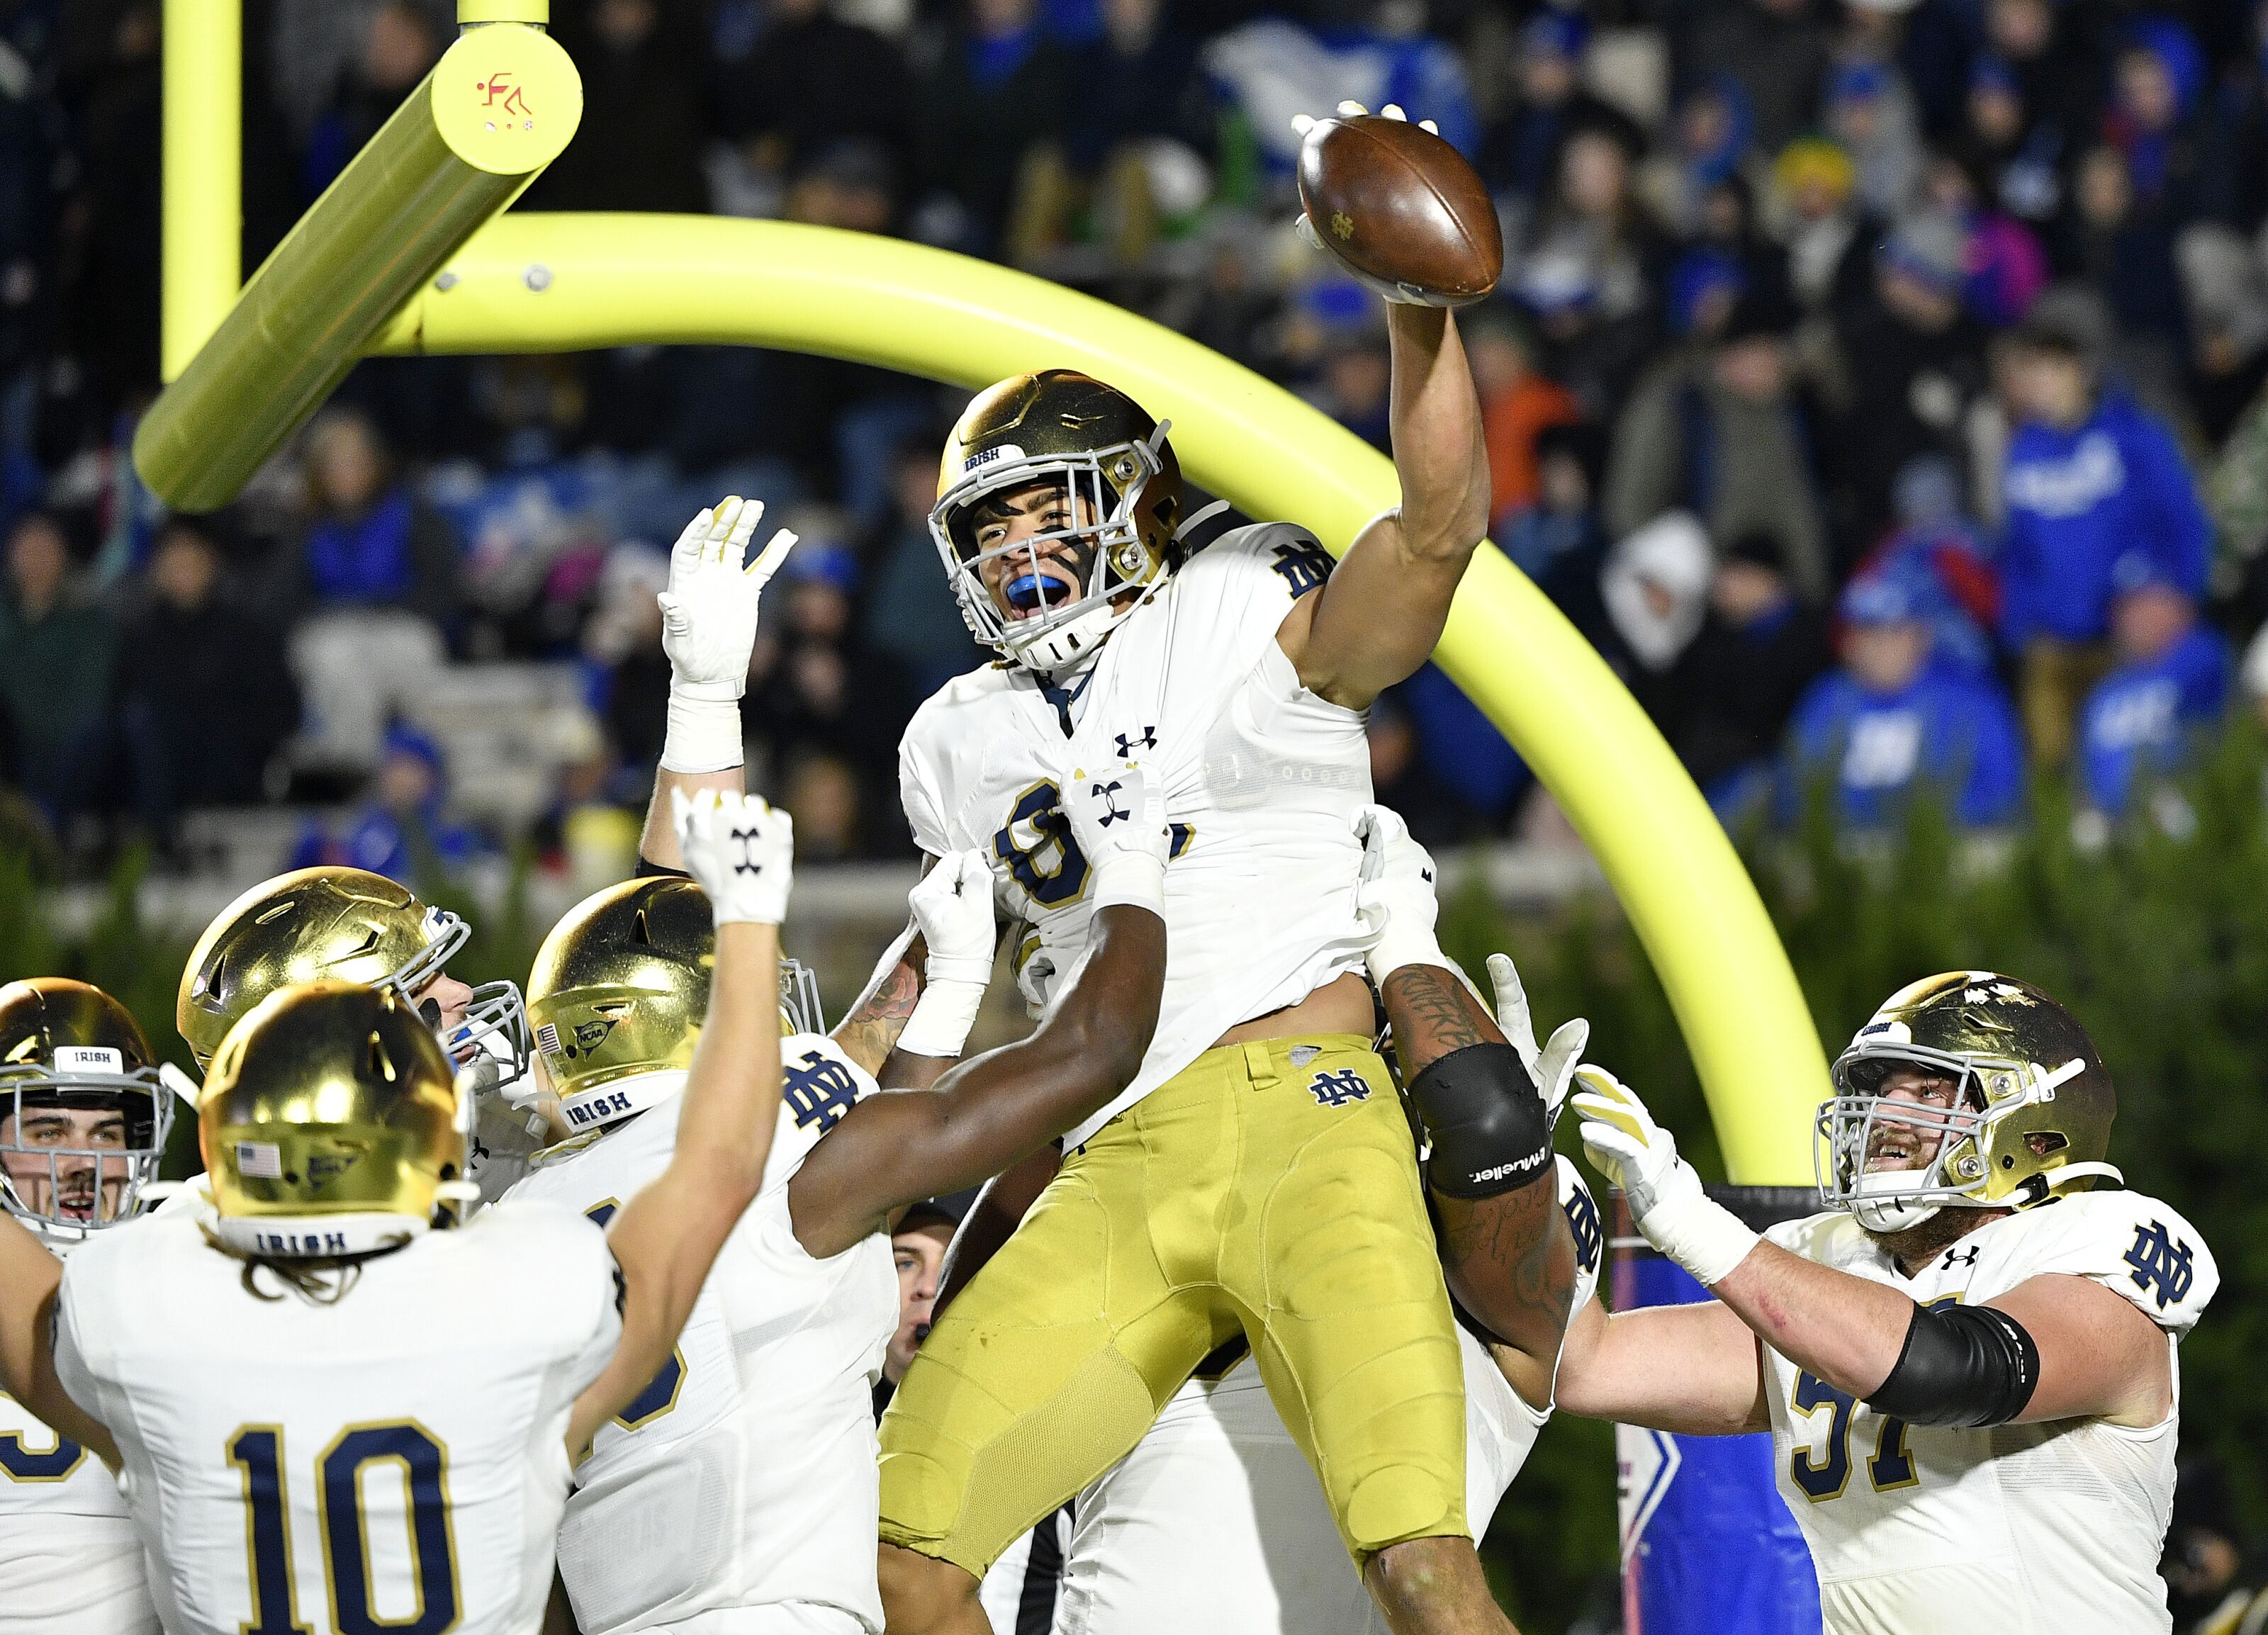 Duke gets embarrassed again as Notre Dame invades Wallace Wade